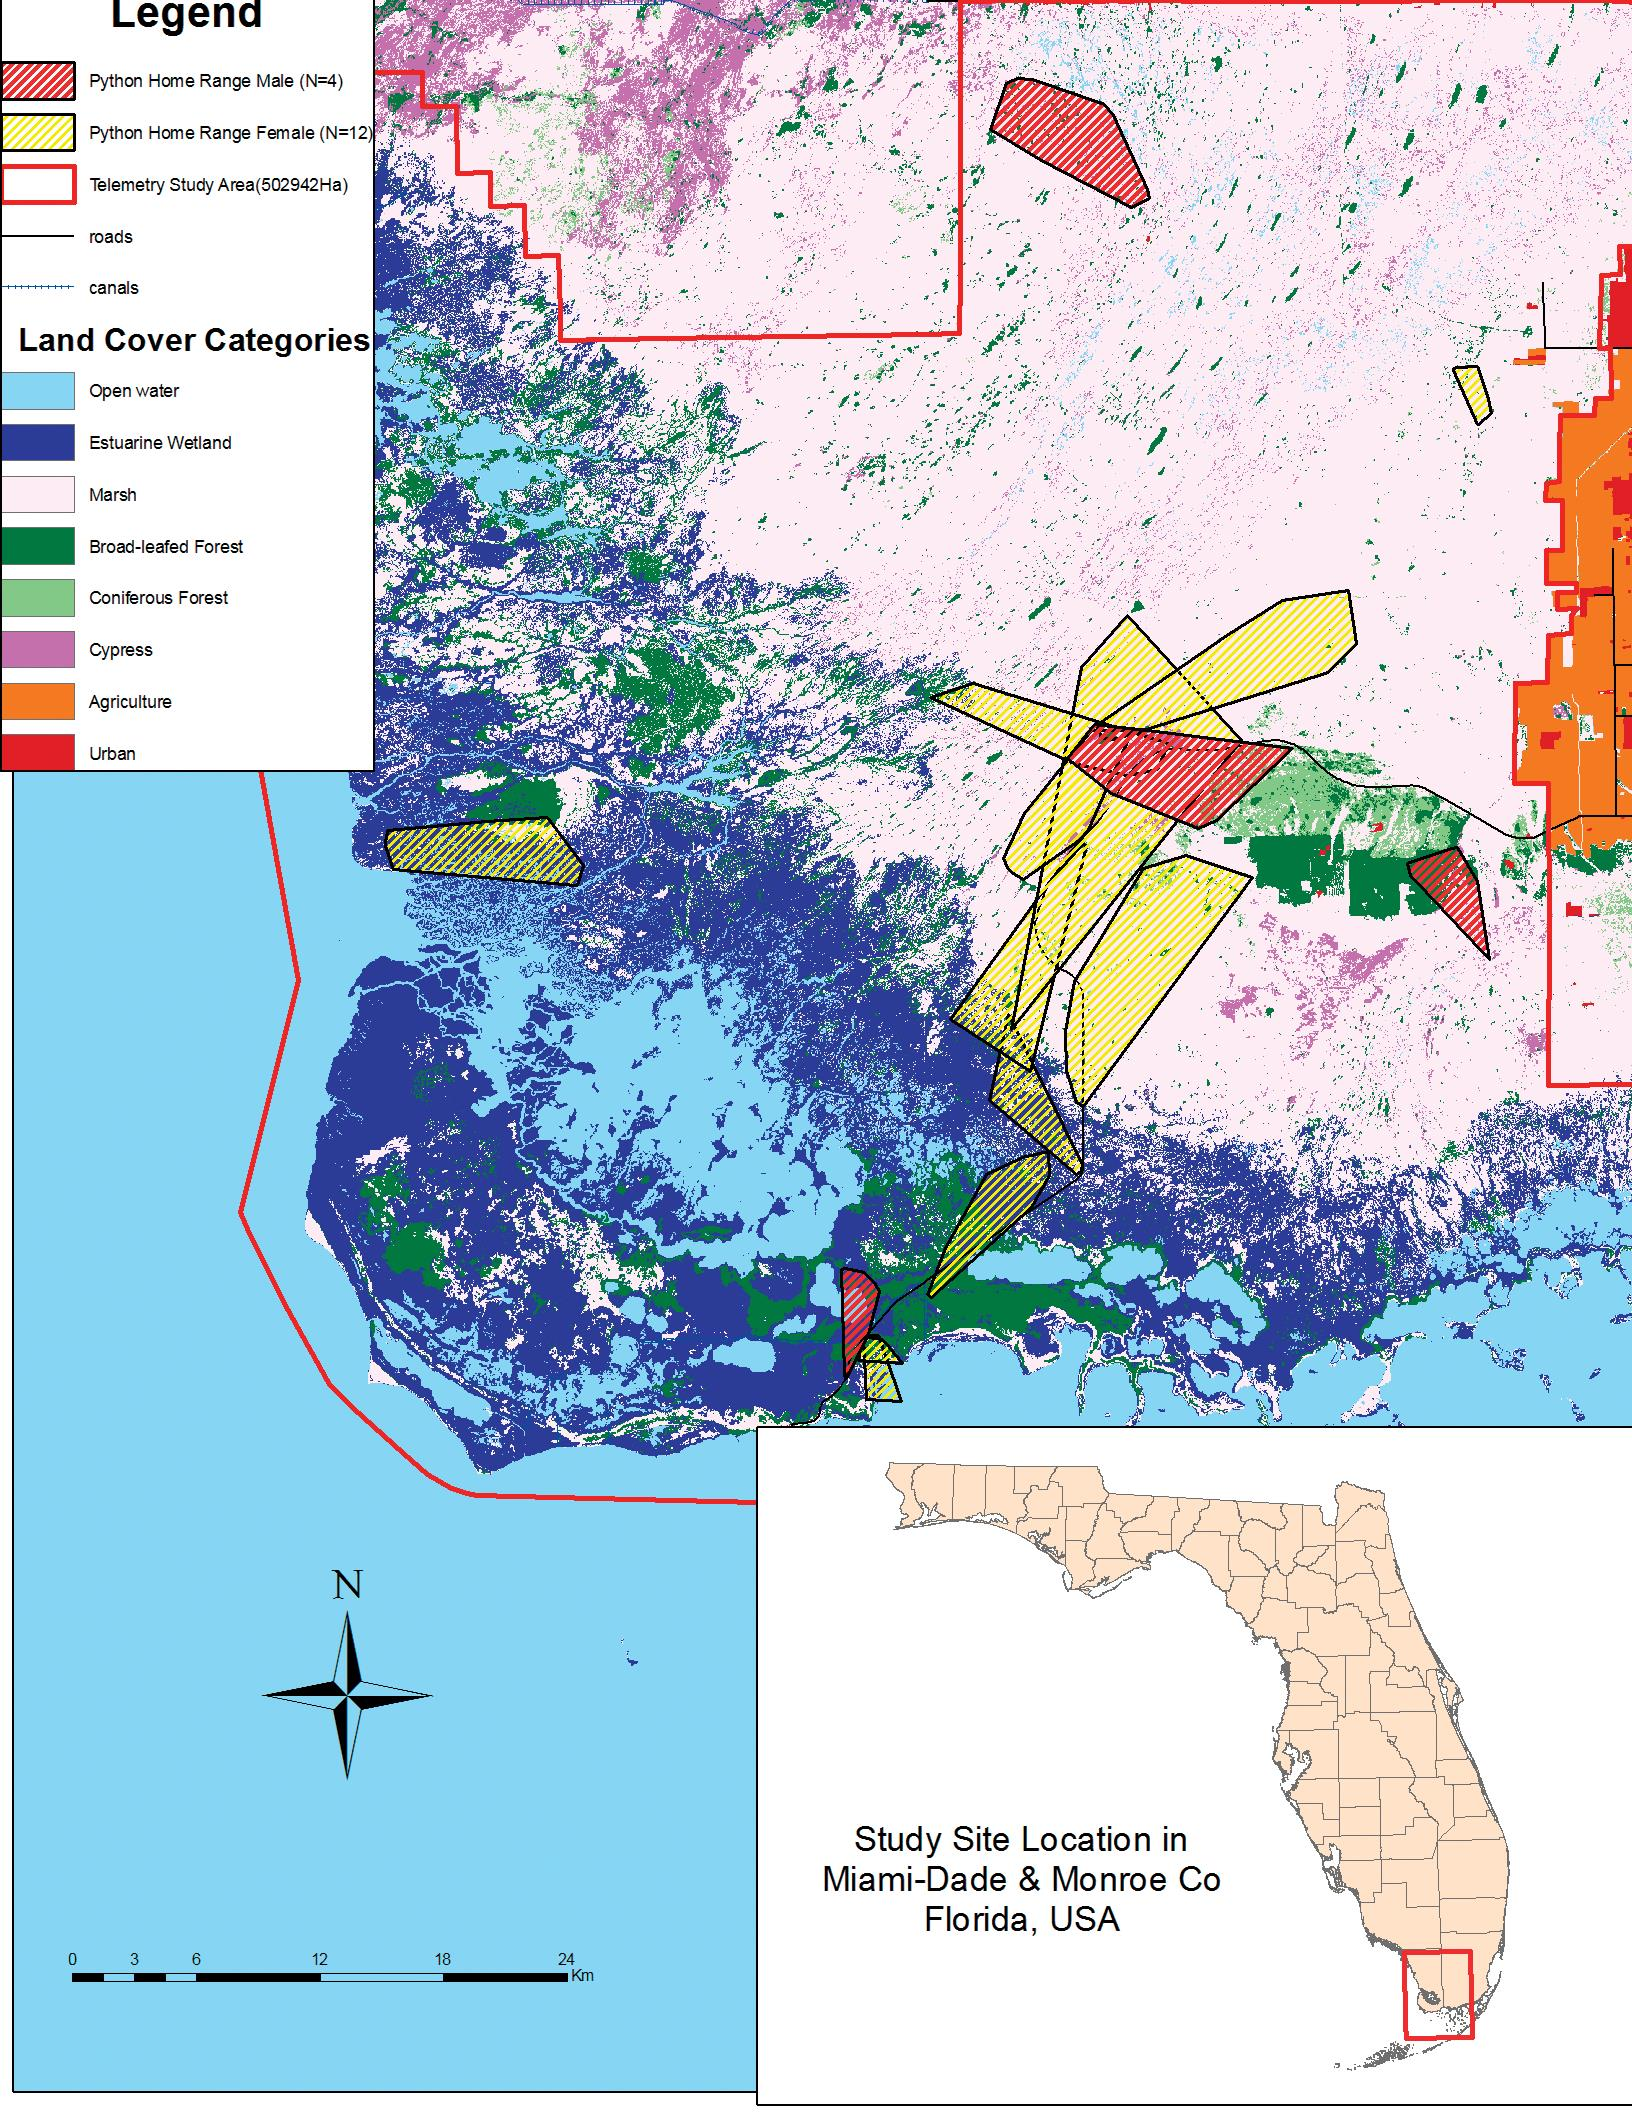 Habitat Selection by the Invasive Species Burmese Python in Southern on